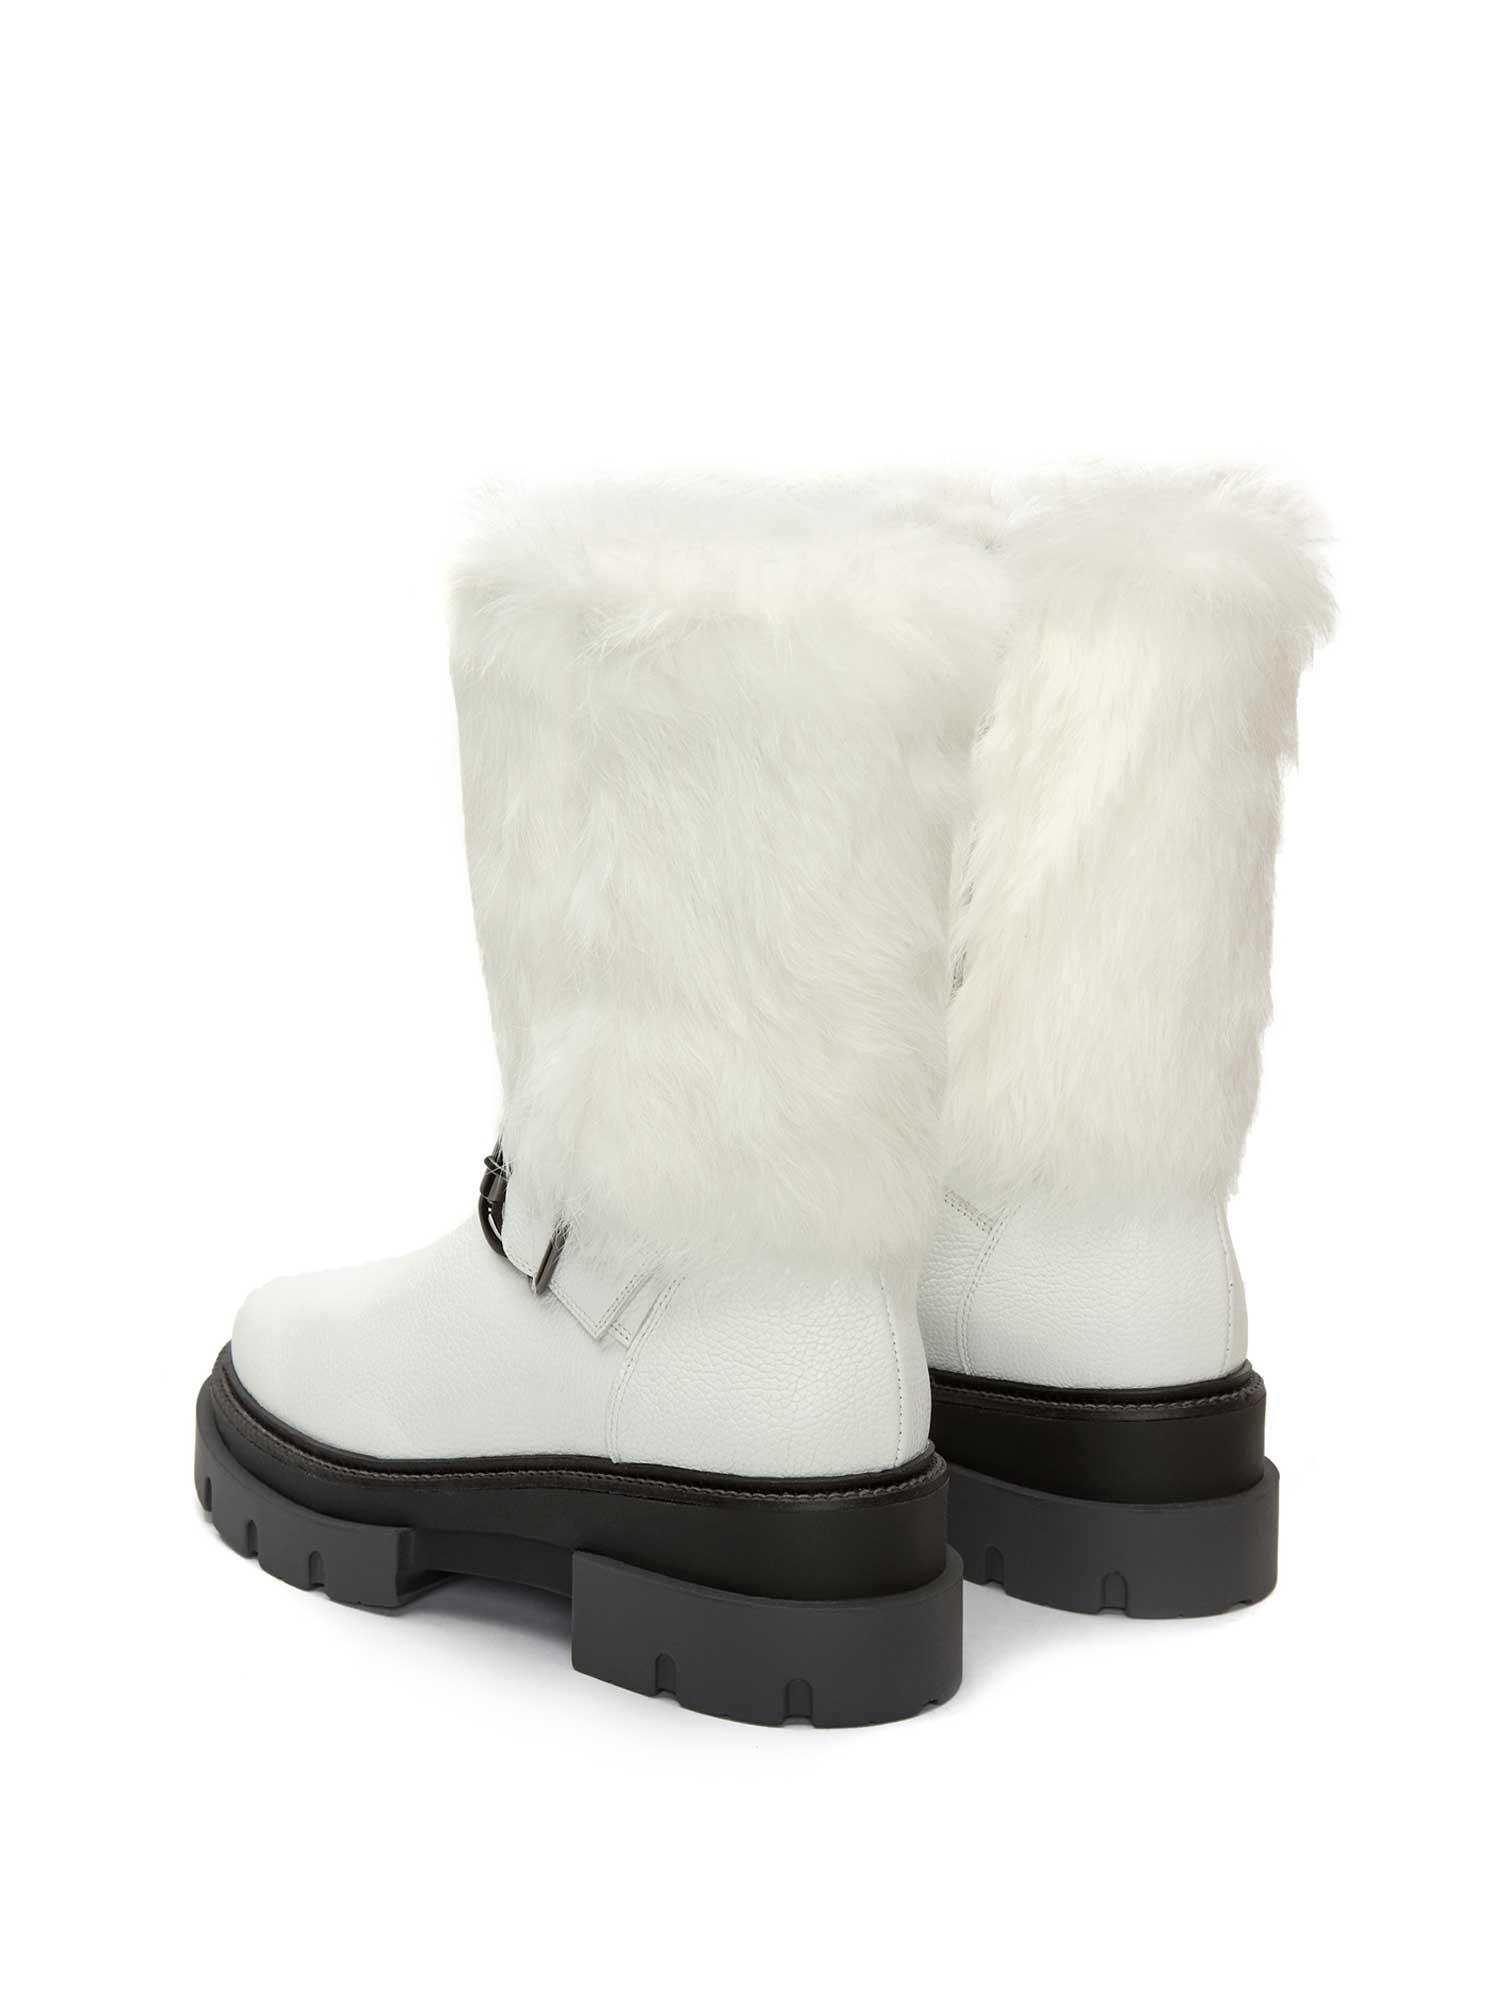 DEBORA WHITE ELK ANKLE BOOT